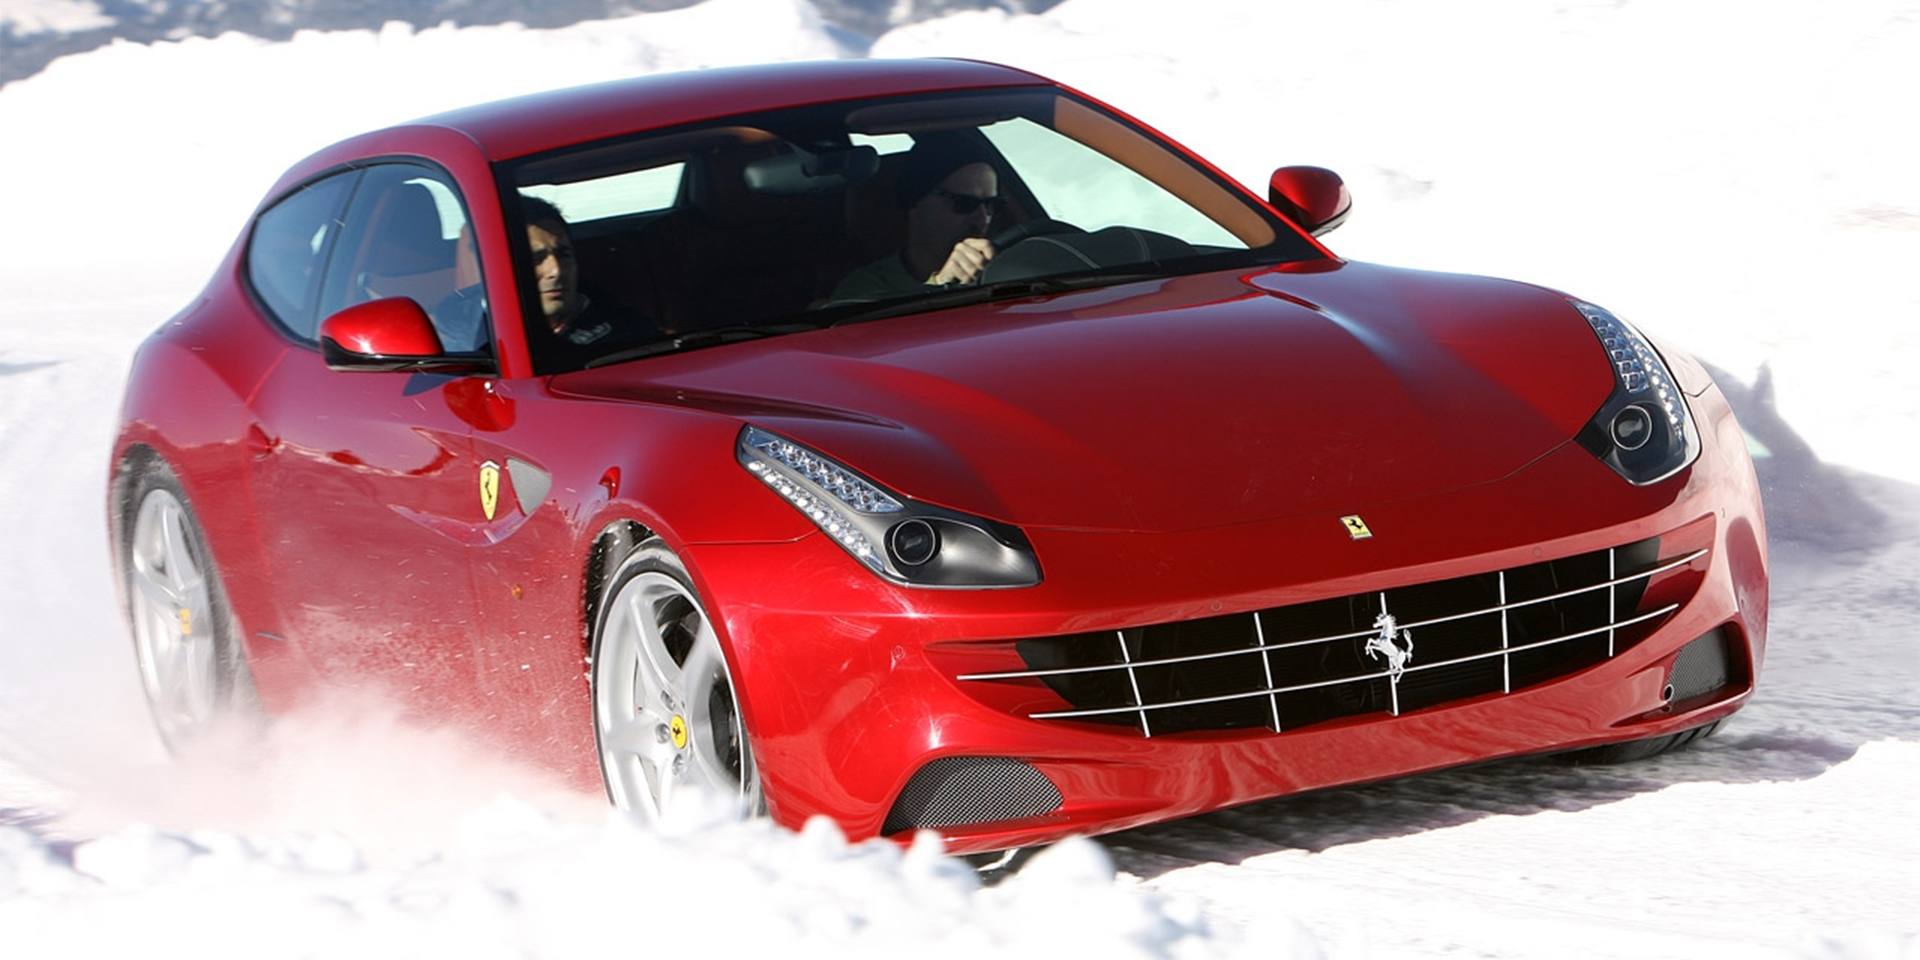 2015 - ferrari - ff - vehicles on display | chicago auto show